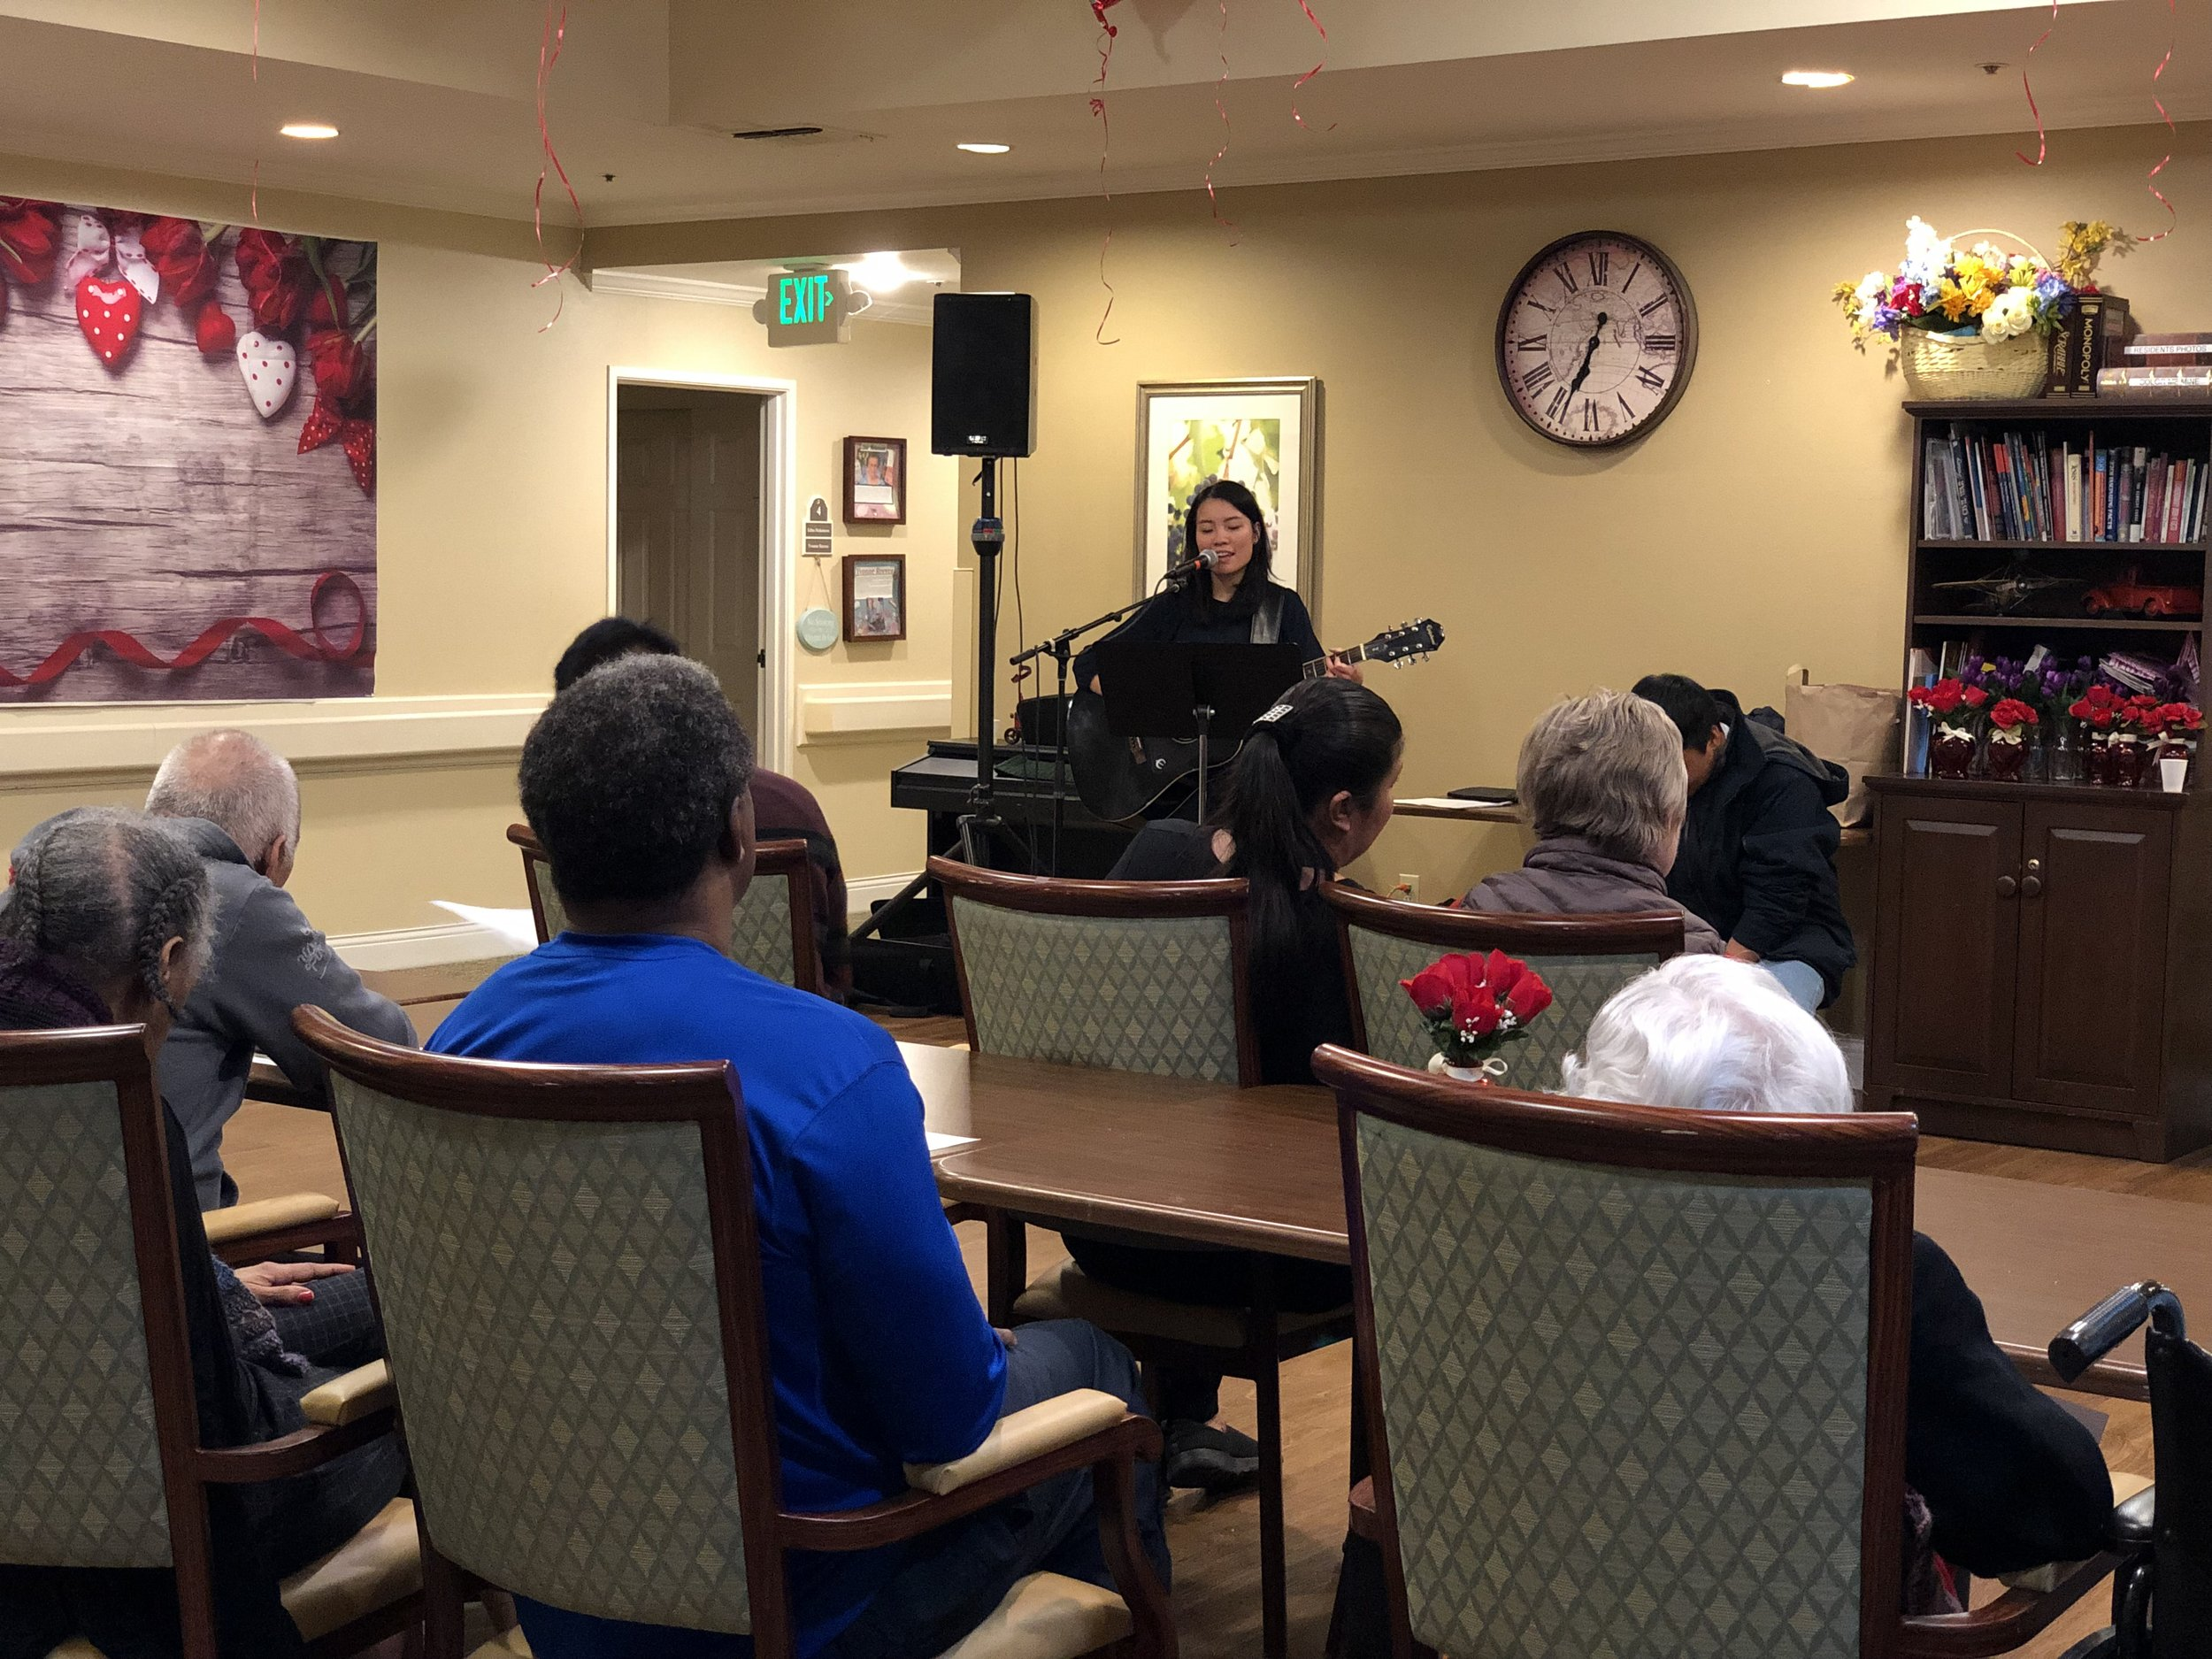 Jana Fernandez leads praise time during her group's visit to a convalescent home in Oakland.